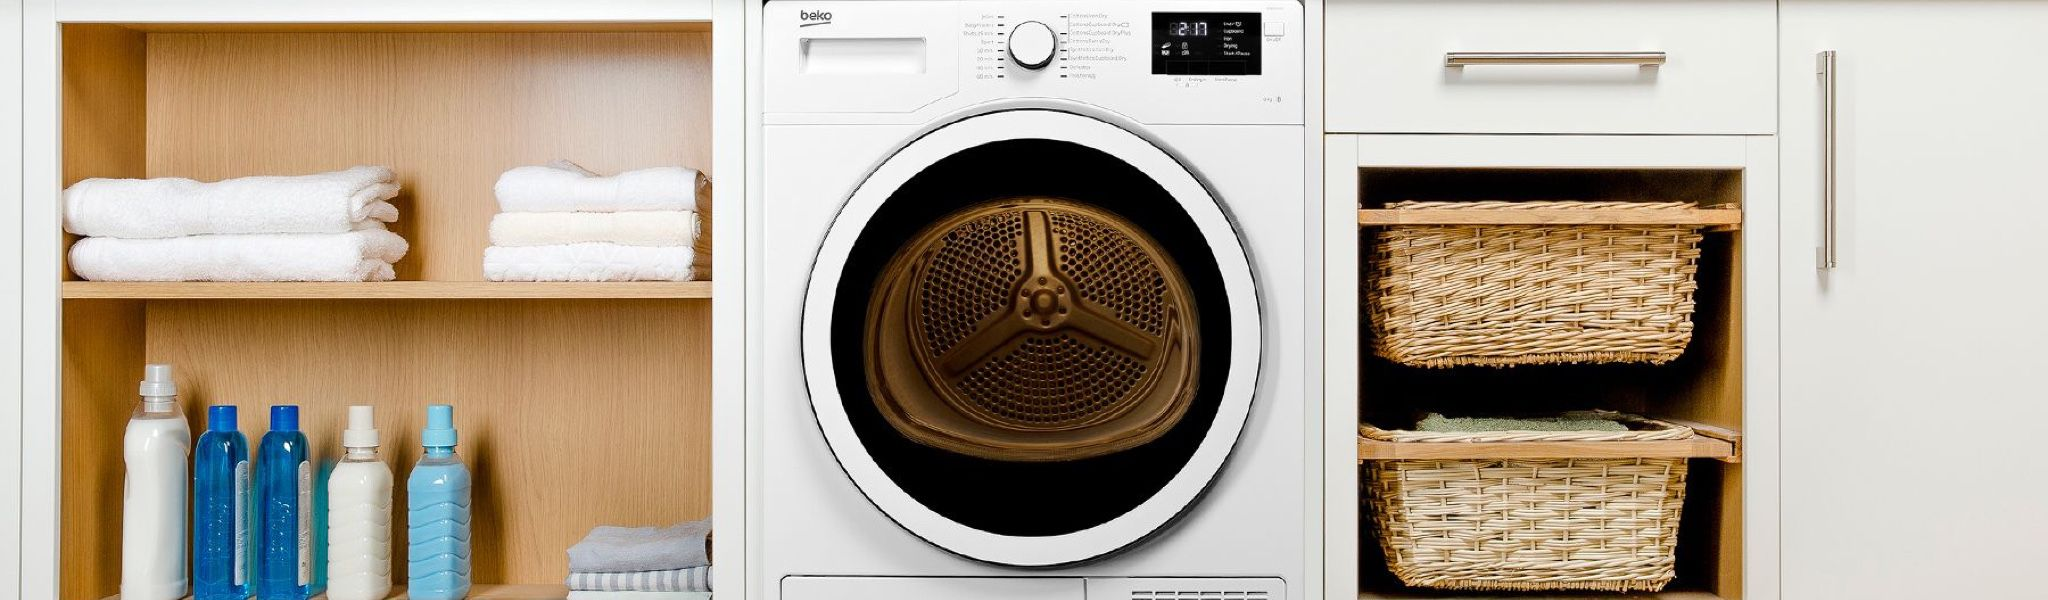 Choosing a tumble dryer